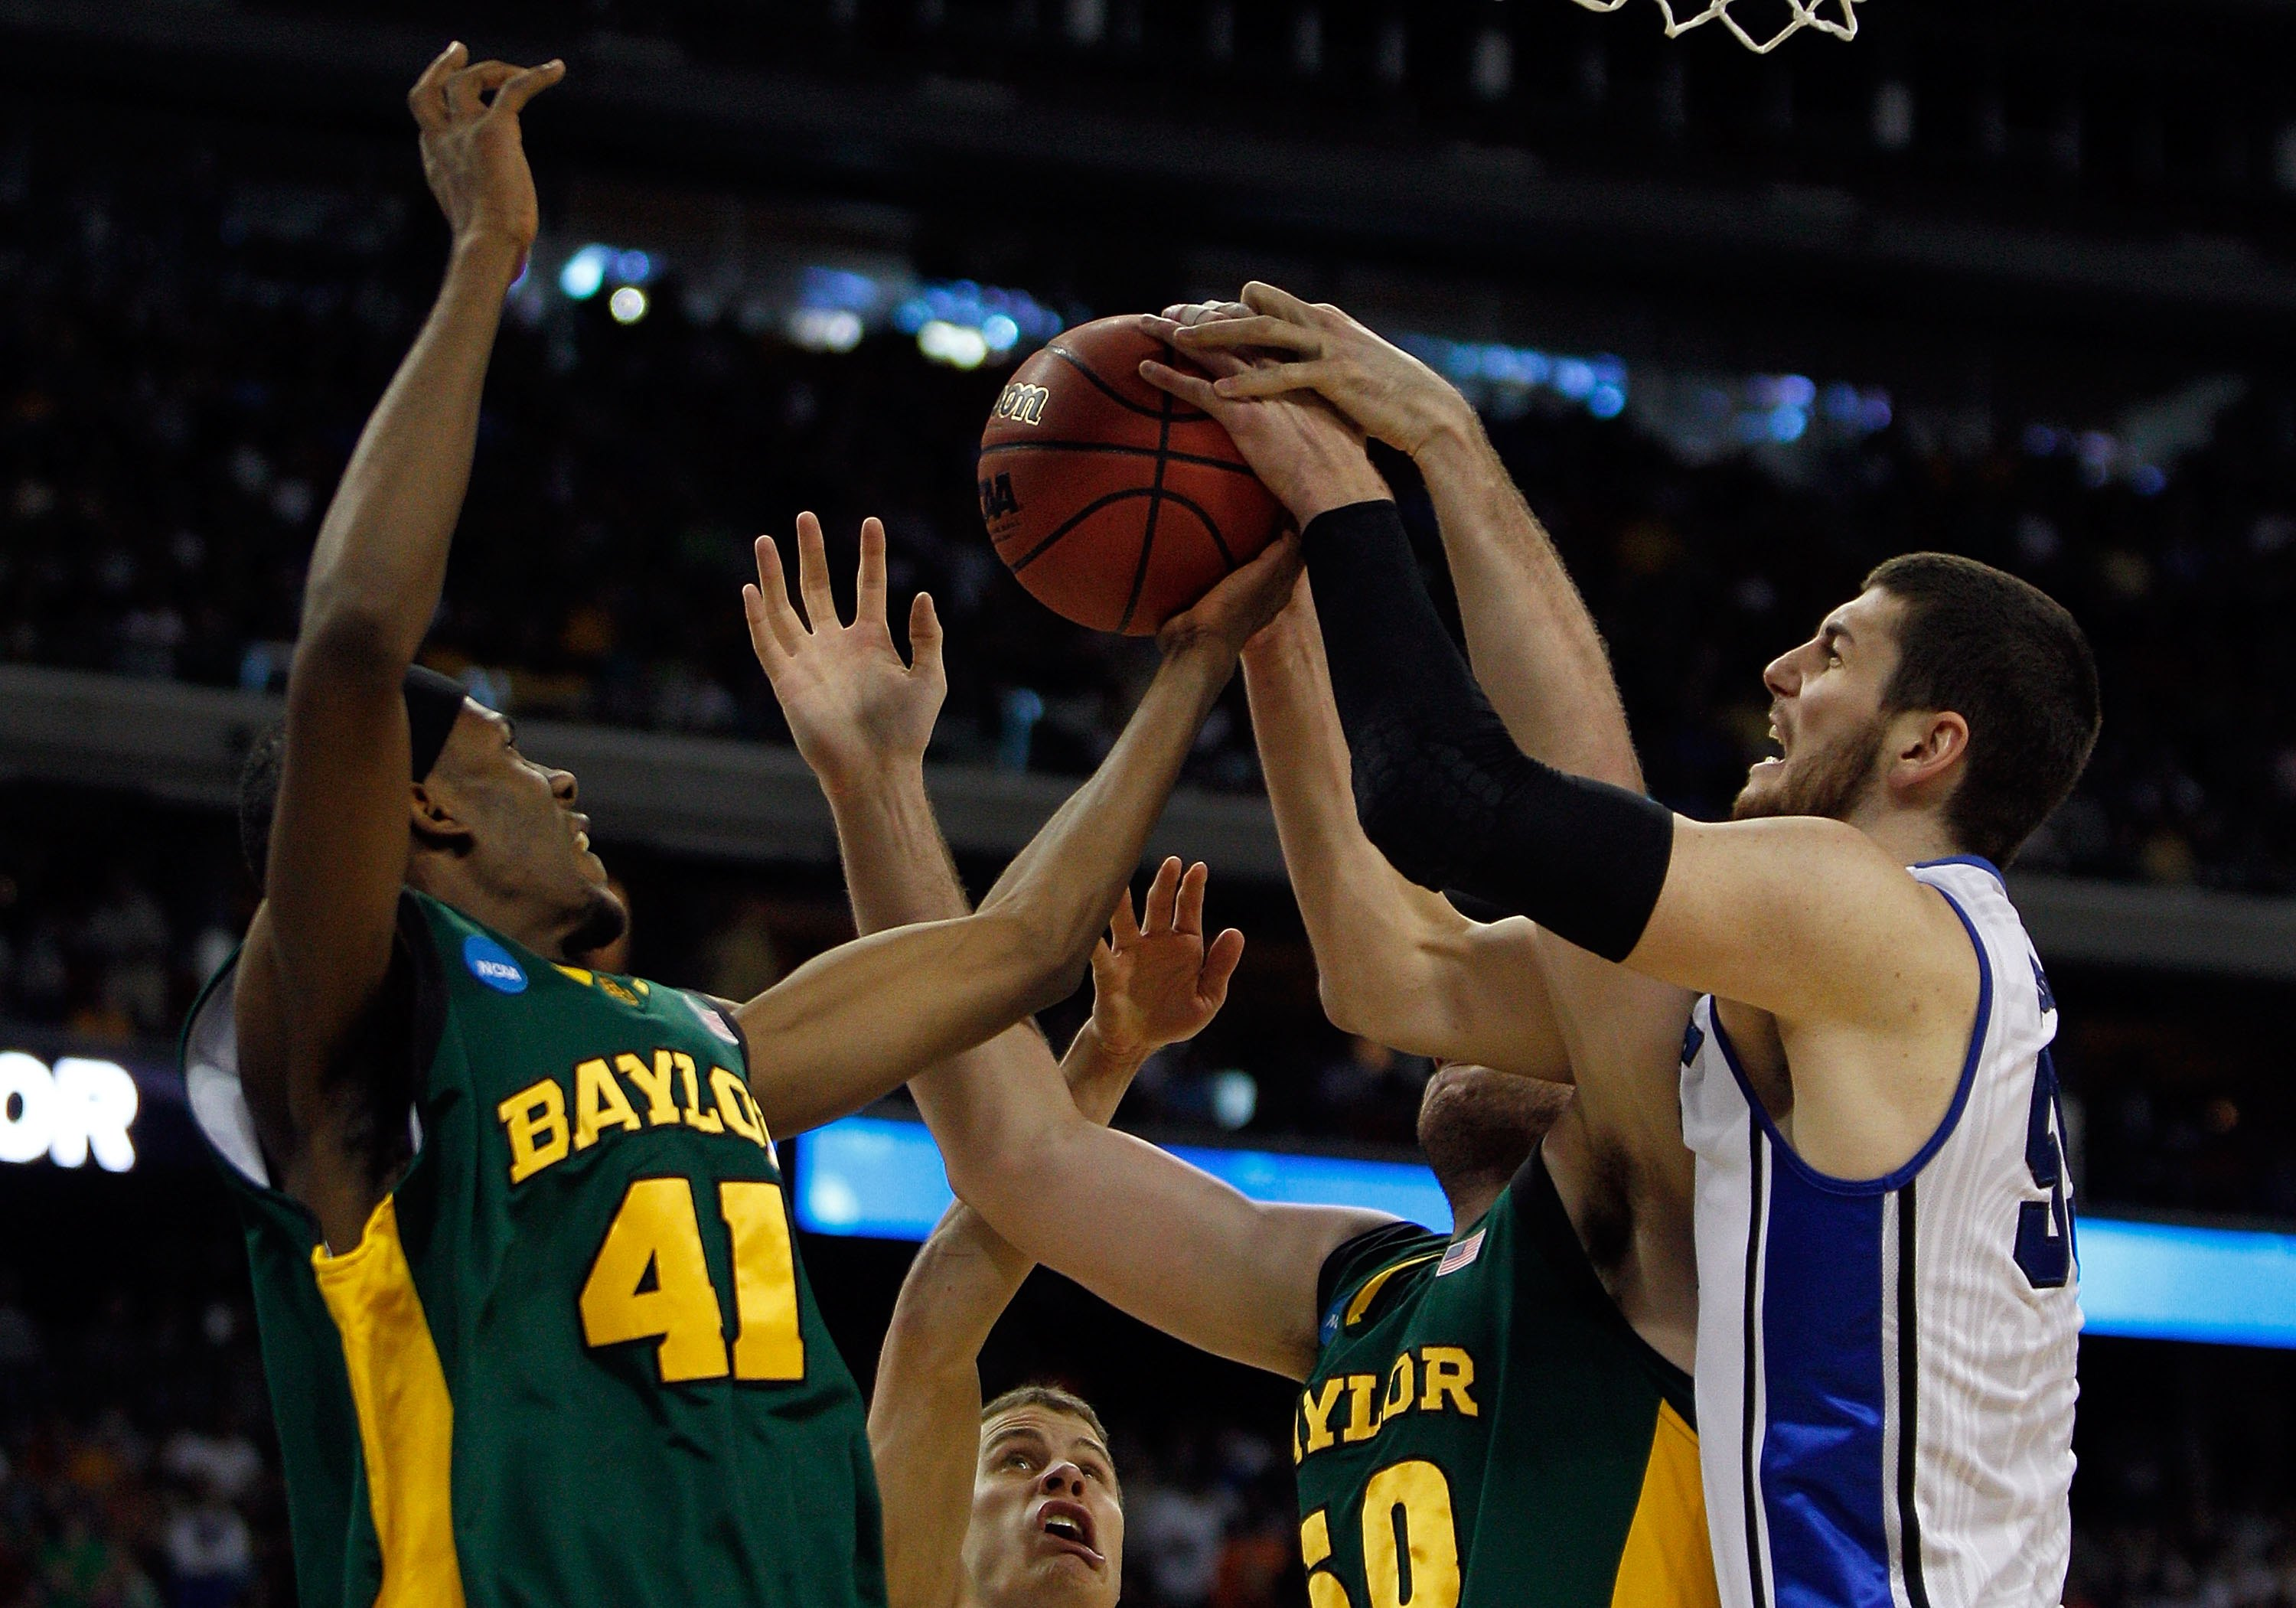 HOUSTON - MARCH 28: Brian Zoubek #55 of the Duke Blue Devils grabs a rebound from Anthony Jones #41 and Josh Lomers #50 of the Baylor Bears during the south regional final of the 2010 NCAA men's basketball tournament at Reliant Stadium on March 28, 2010 i